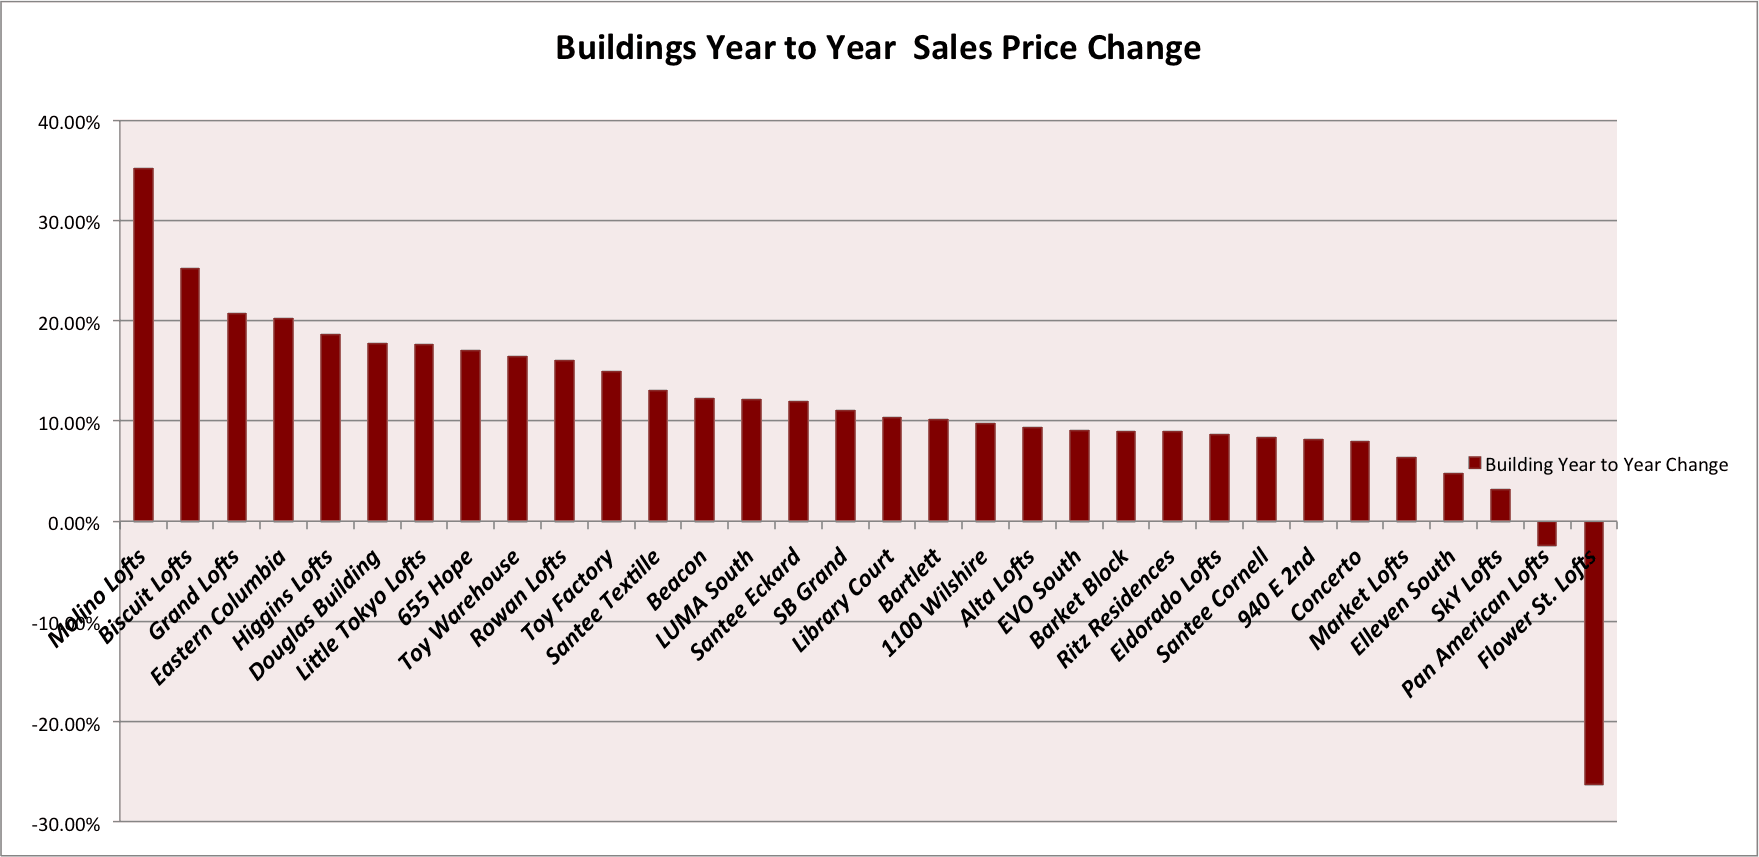 Molino loft has the highest avg price/sf gain at 35.18%. Flower Street loft avg price/Sf dip 26.26% in 2015. However, Flower Street loft has one of the highest year to date gain of 10.70% second to Eldorado loft at 11.10%. Contact me for more details on the price change of your building of interest.